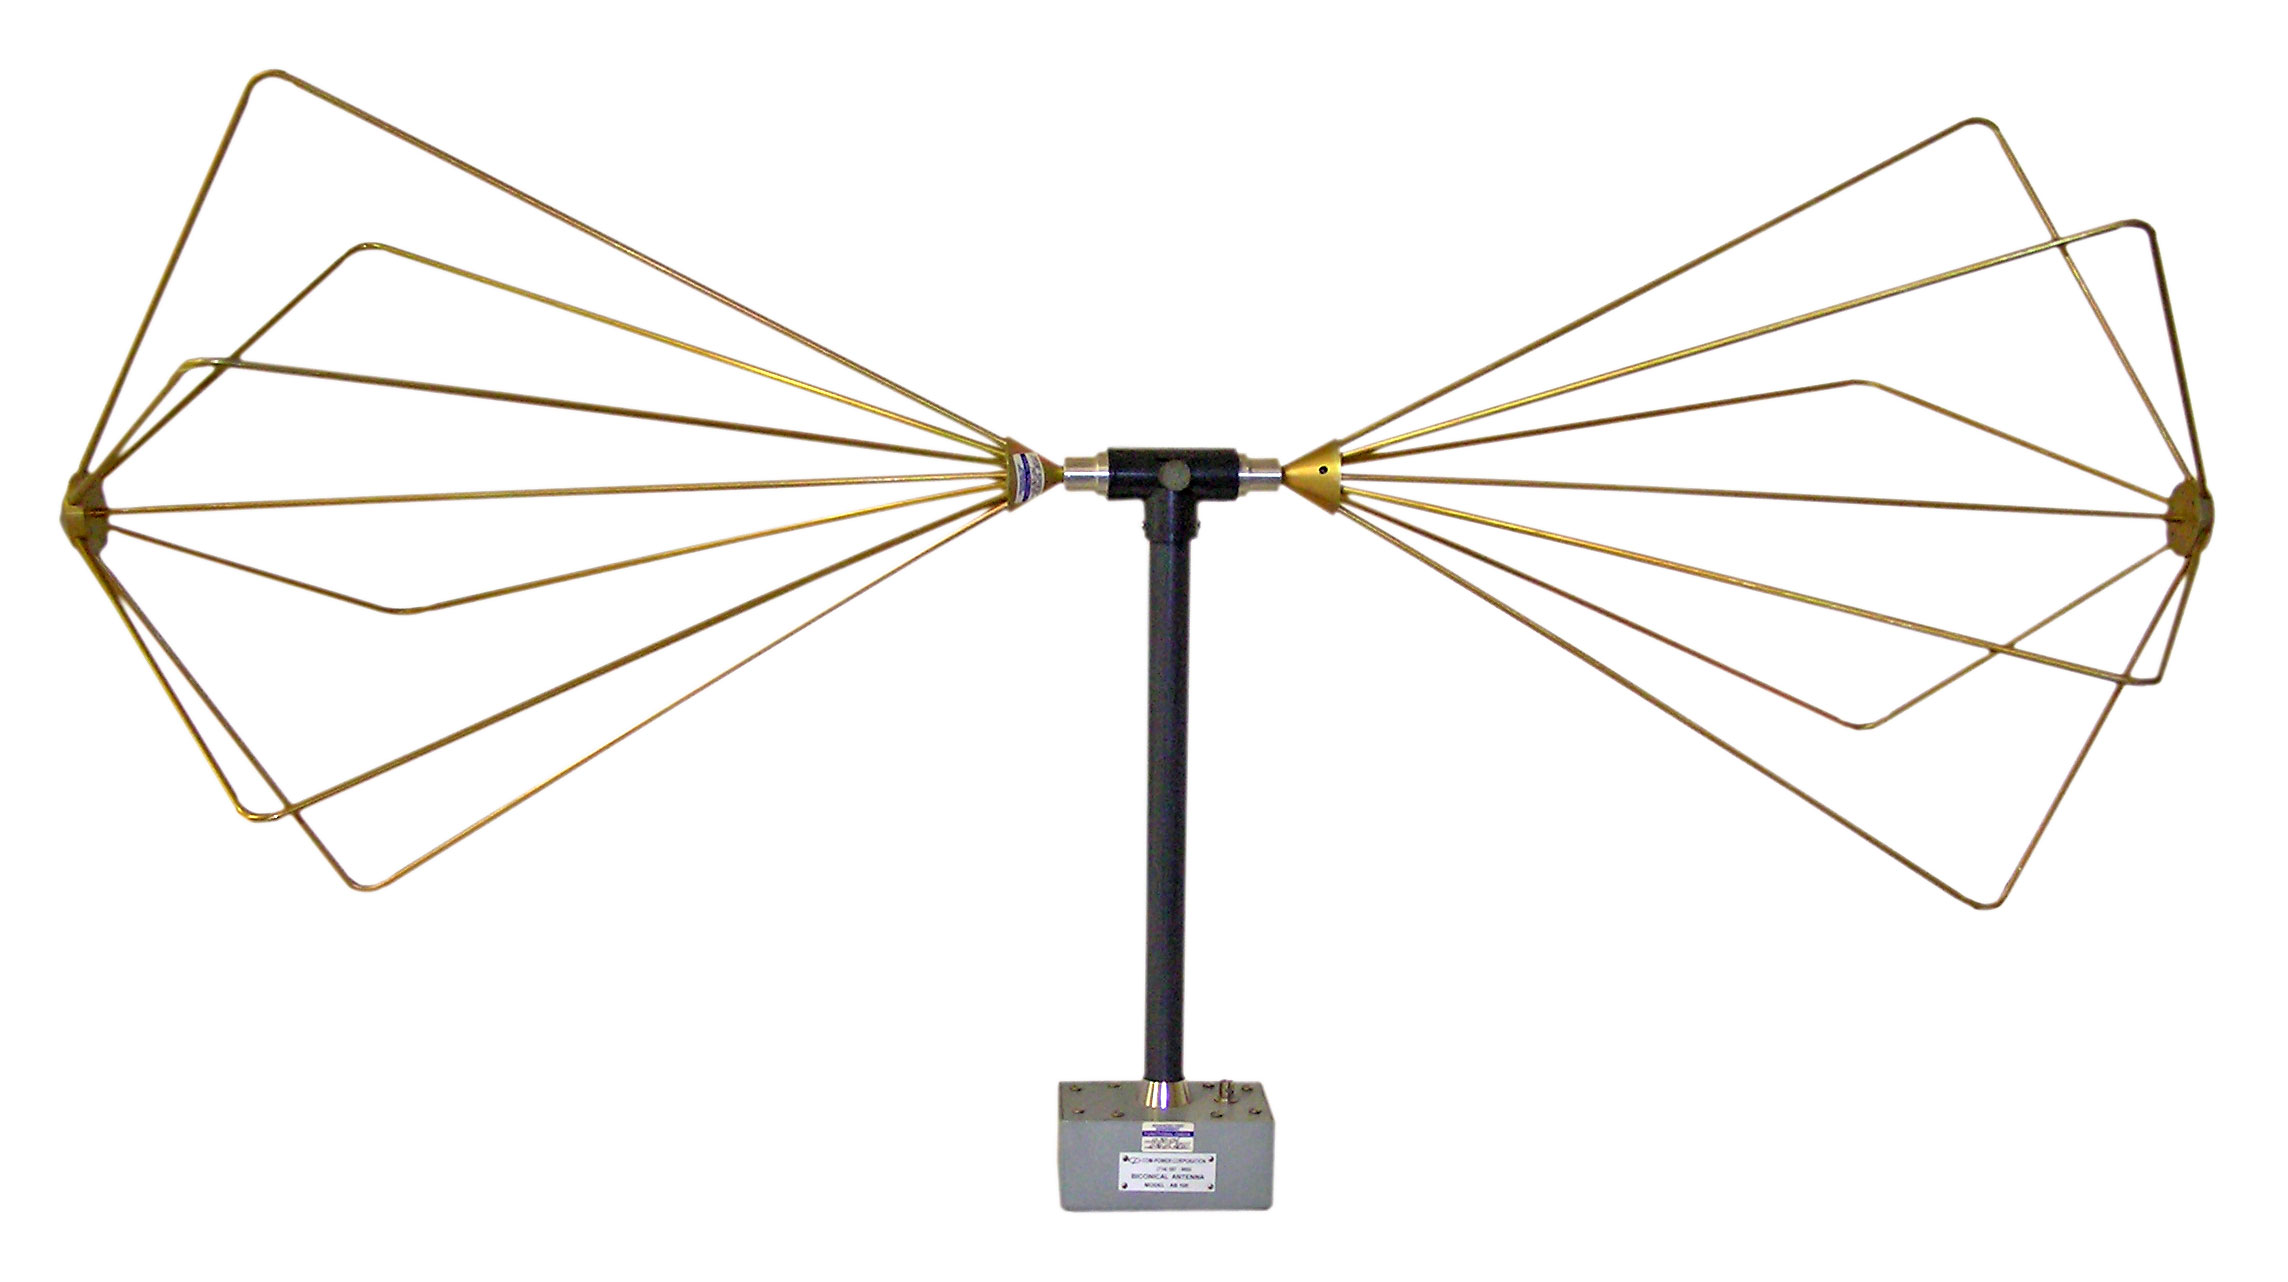 Com-Power AB-100 Wide Band Biconical Antenna